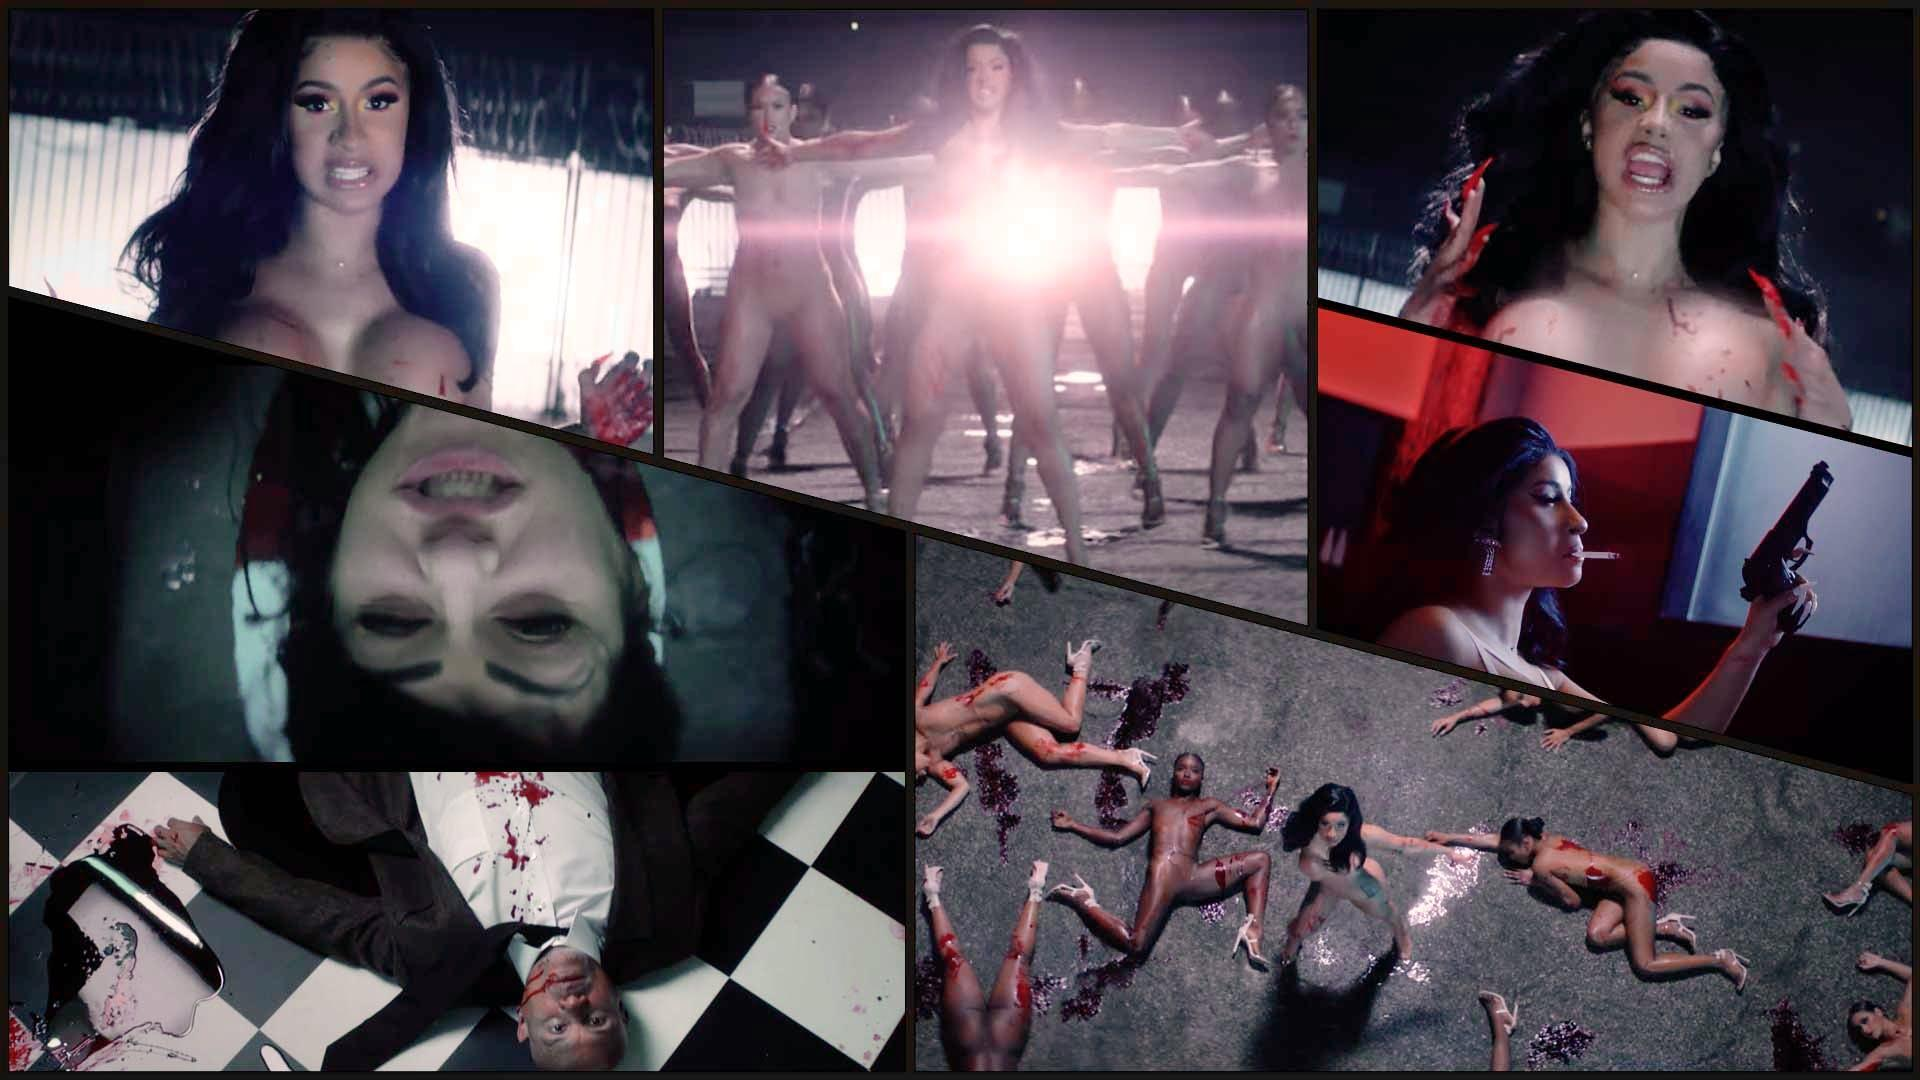 Cardi B S Press Music Video Is Full Of Naked Bodies And Murder